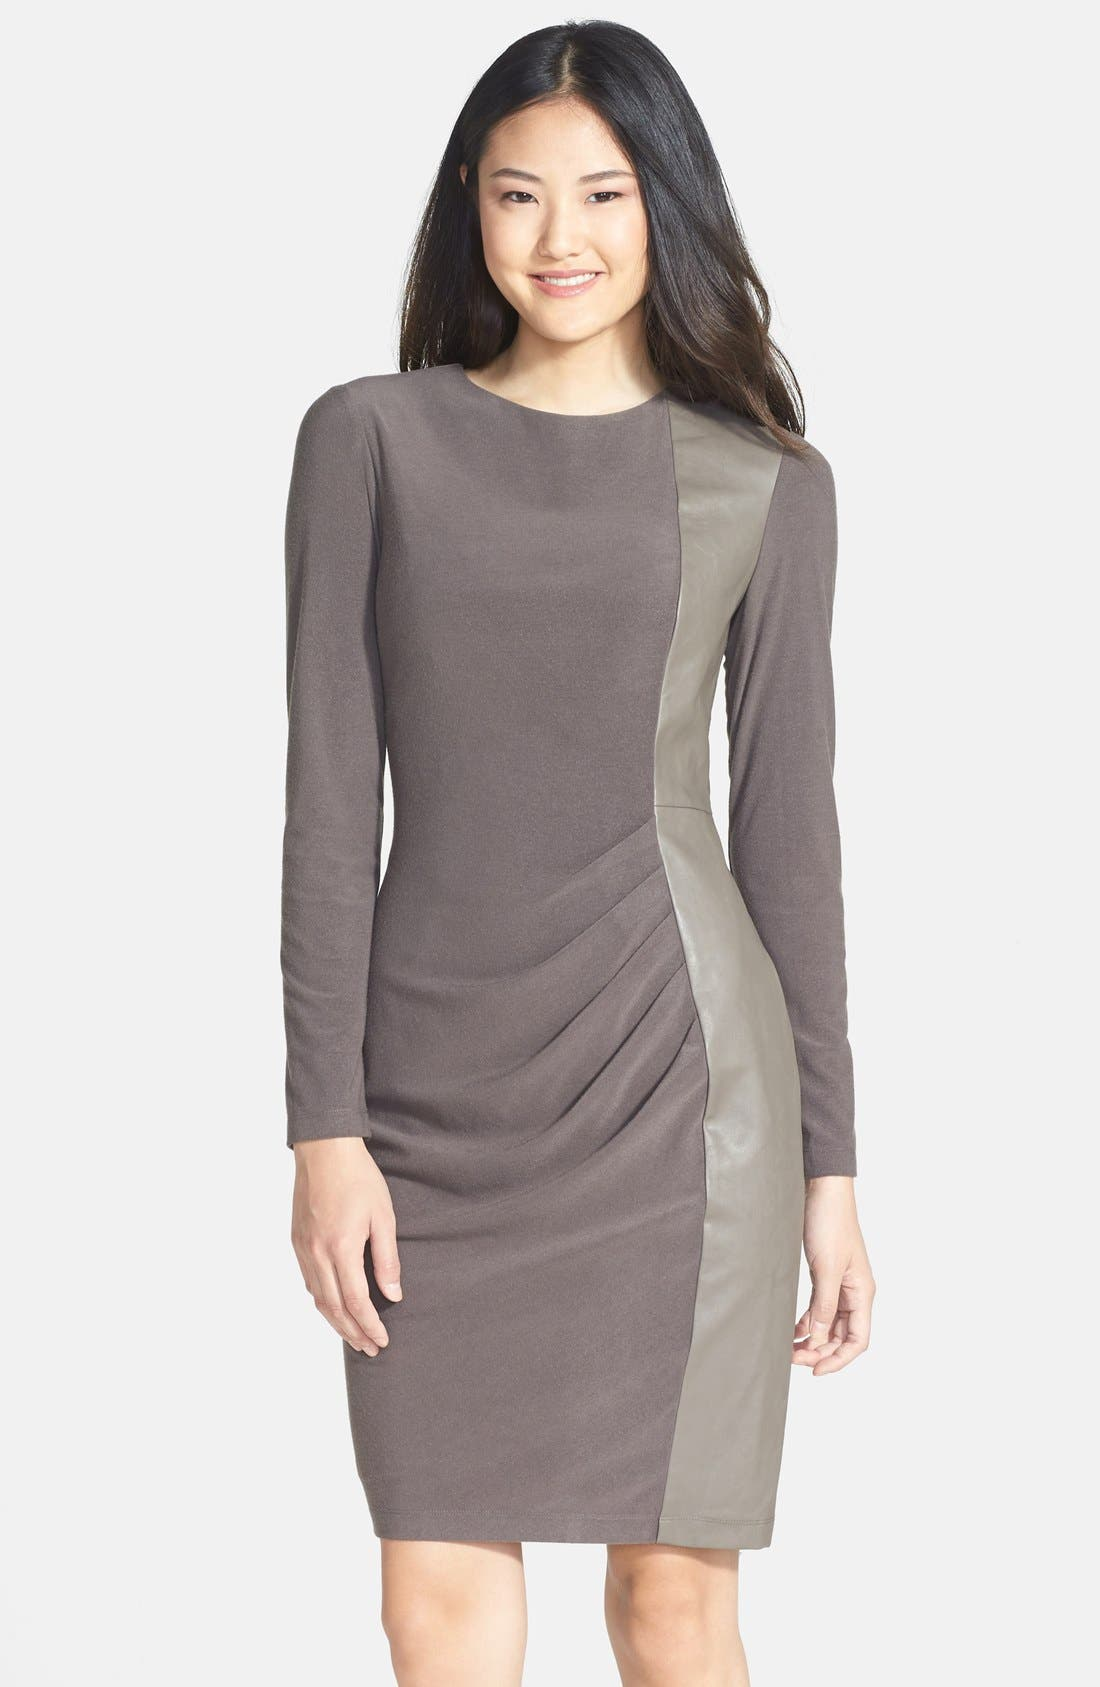 Alternate Image 1 Selected - Vince Camuto Faux Leather Panel Ponte Sheath Dress (Regular & Petite)